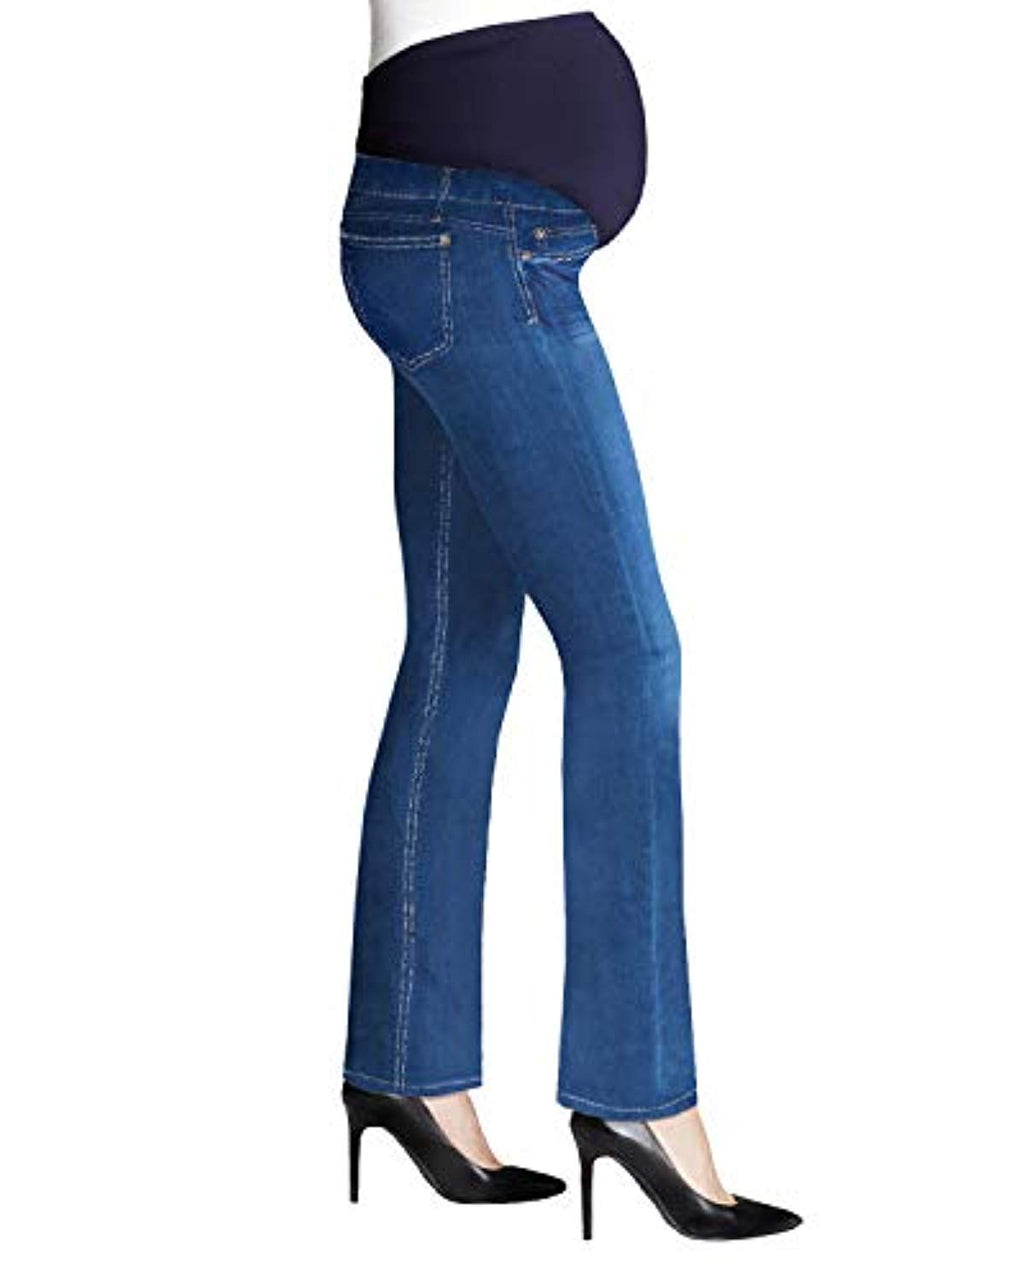 Denim Stretch Bootcut Maternity Jeans - Mommylicious